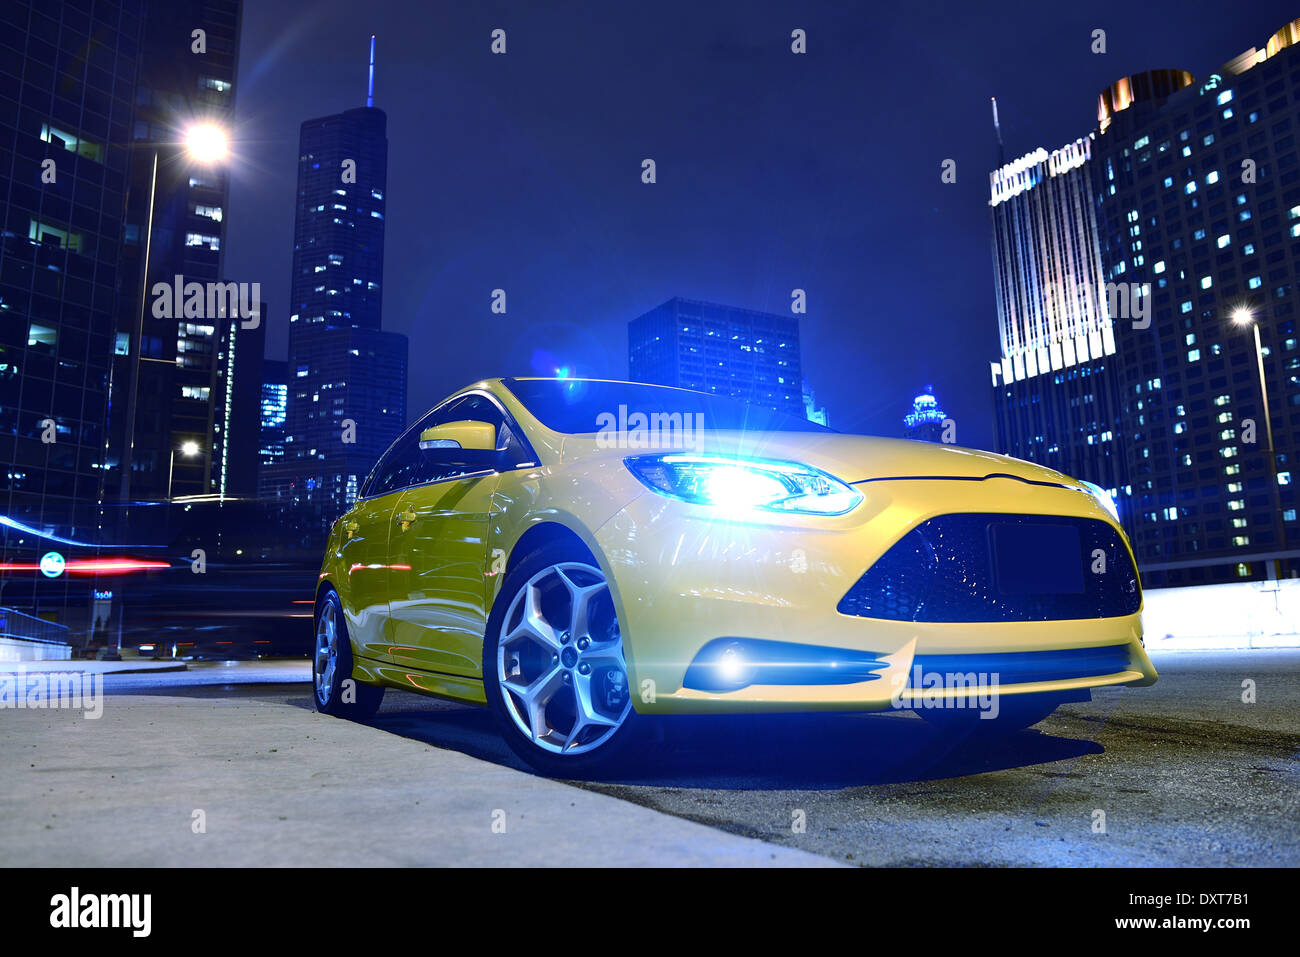 Performance Yellow Car in Downtown Chicago. Fast and Furious. Car at Night - Urban Theme. Performance Vehicles Photography Colle - Stock Image